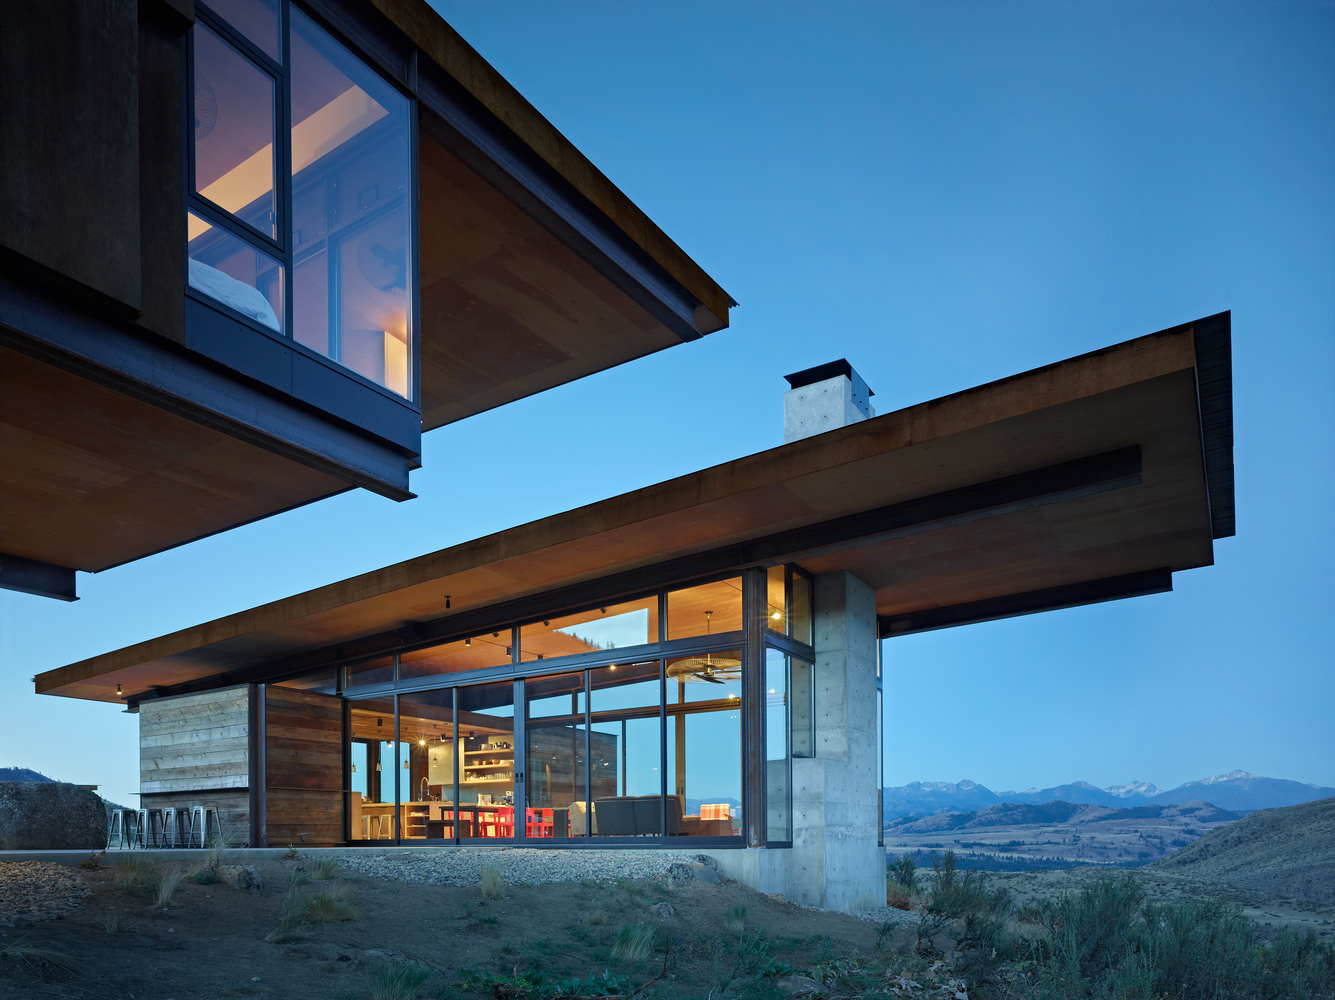 Studhorse Outlook. Methow Valley, Winthrop, Washington. Client: Olson Kundig Architects. © Copyright 2012 Benjamin Benschneider All Rights Reserved. Usage may be arranged by contacting Benjamin Benschneider Photography. Email: bbenschneider@comcast.net or phone: 206-789-5973.